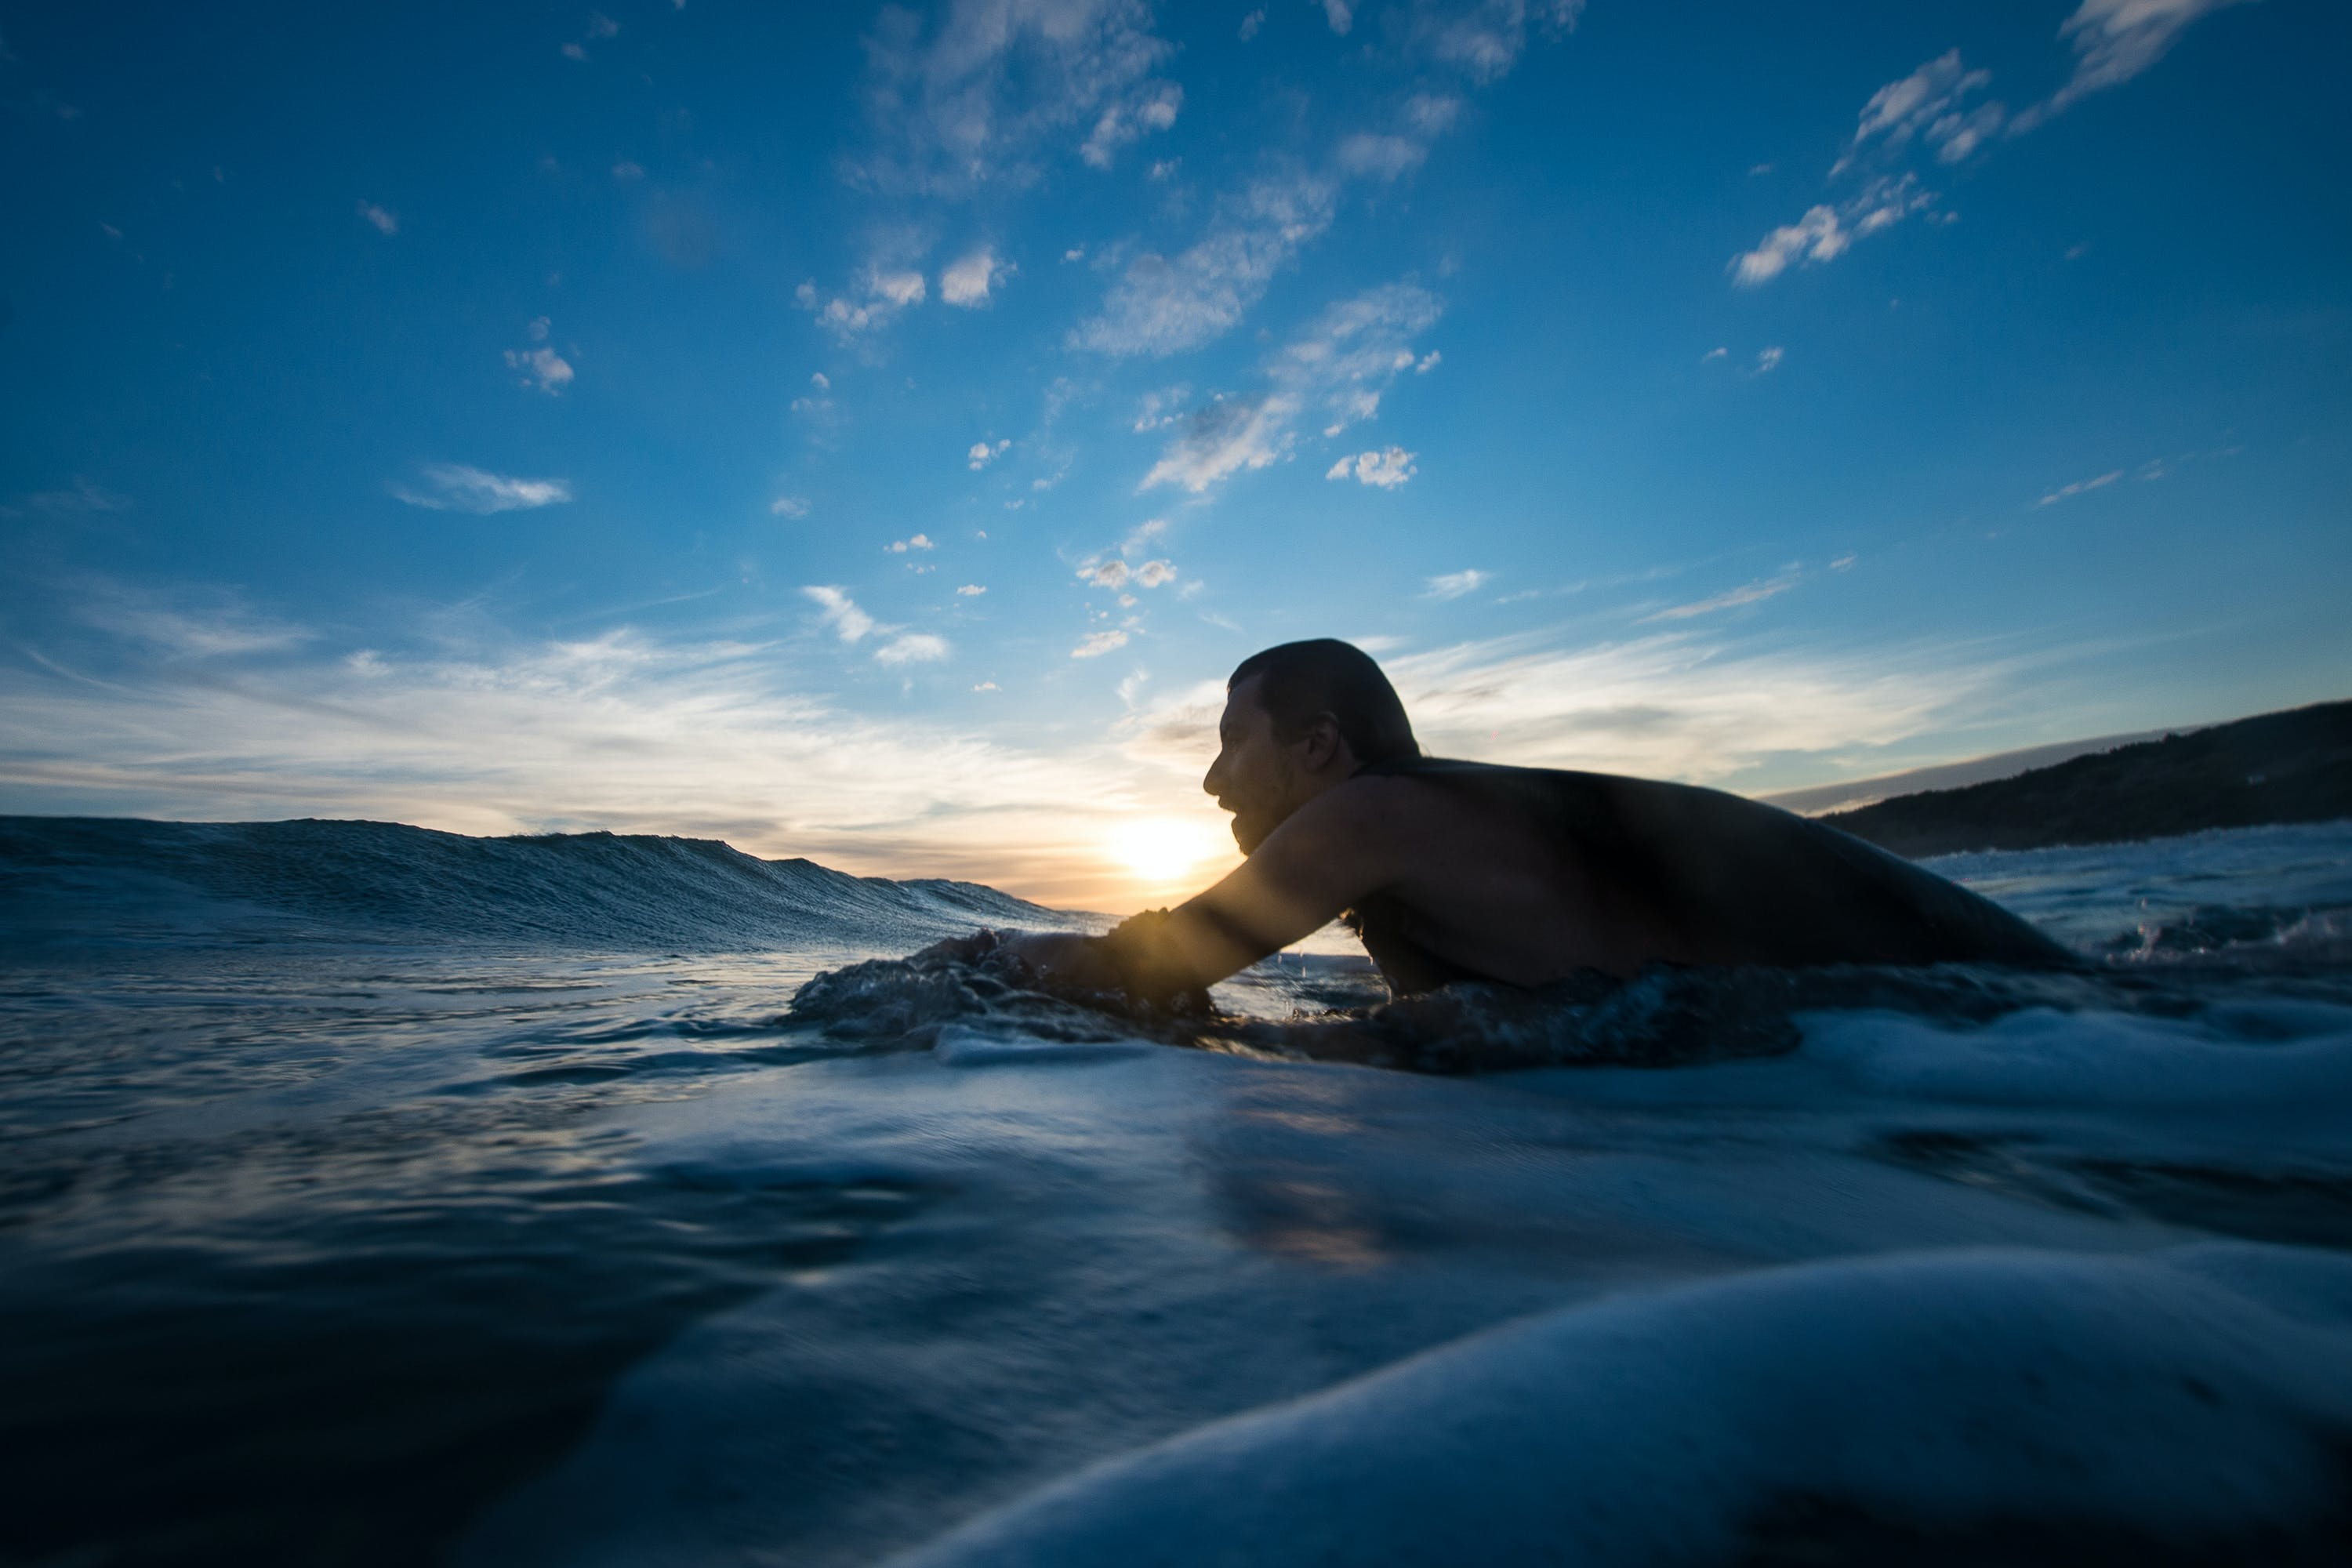 Man Surfing during Blue Hour